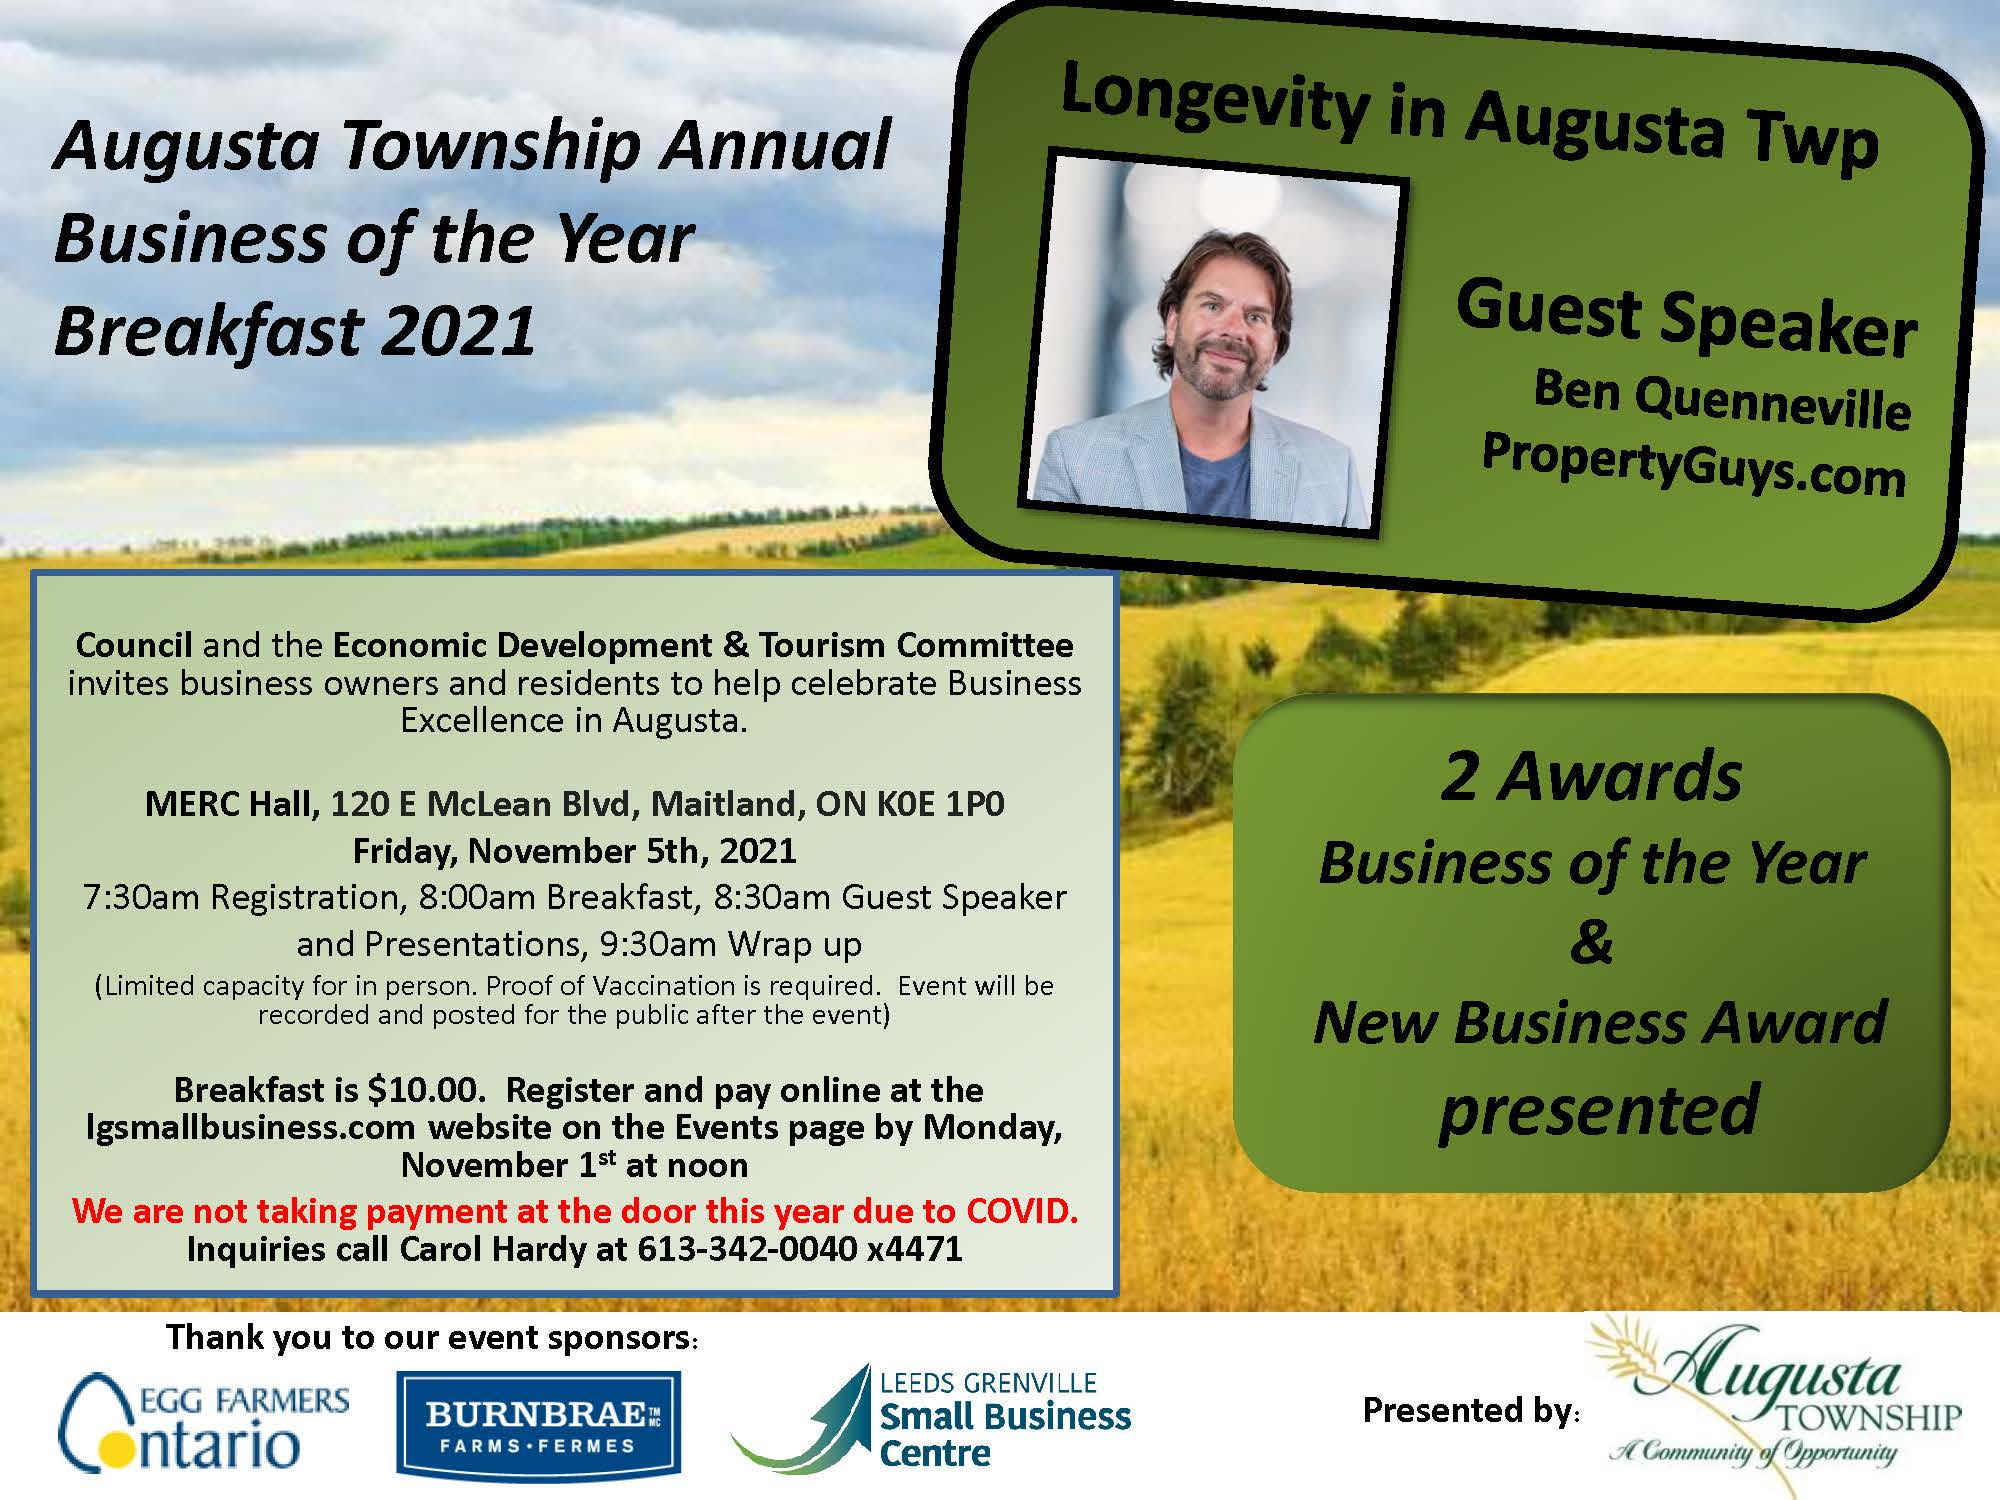 Business/New Business of the Year Award breakfast poster. November 5, 2021